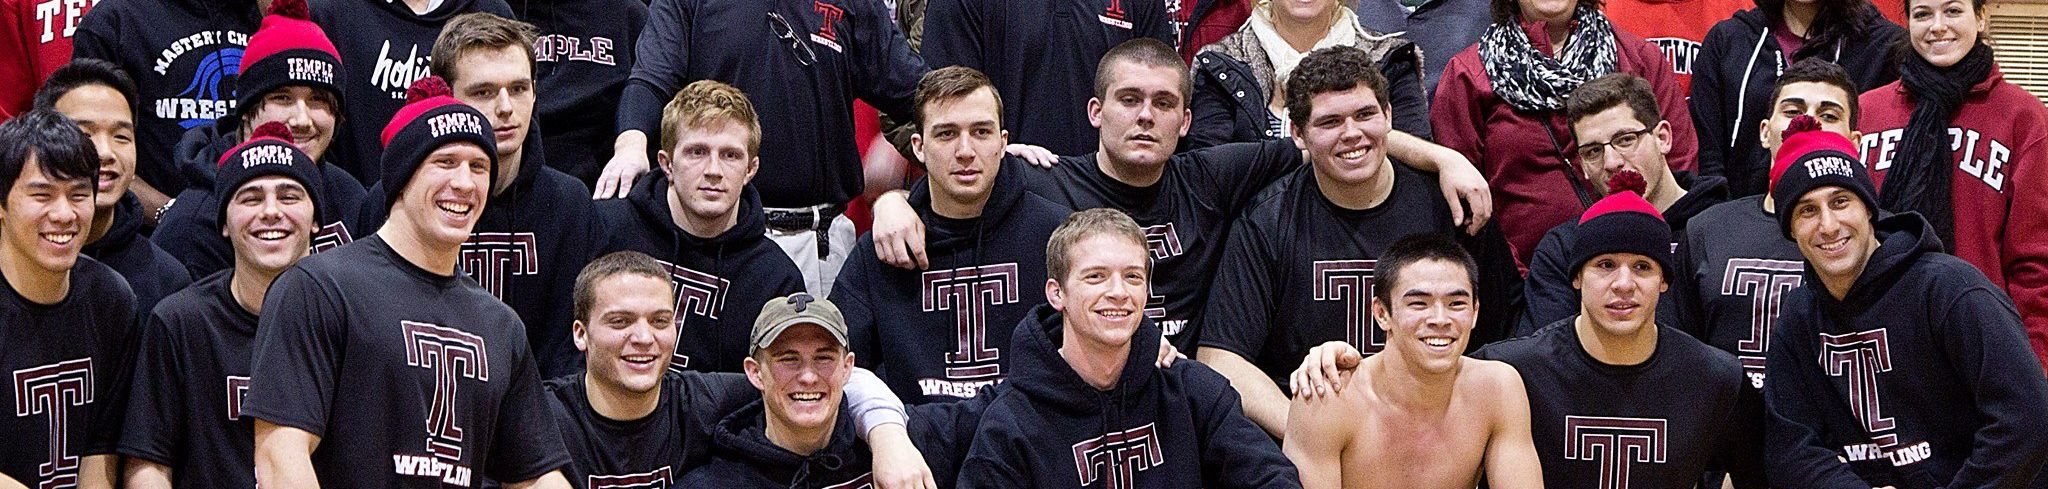 Temple University Wrestling Club team picture.